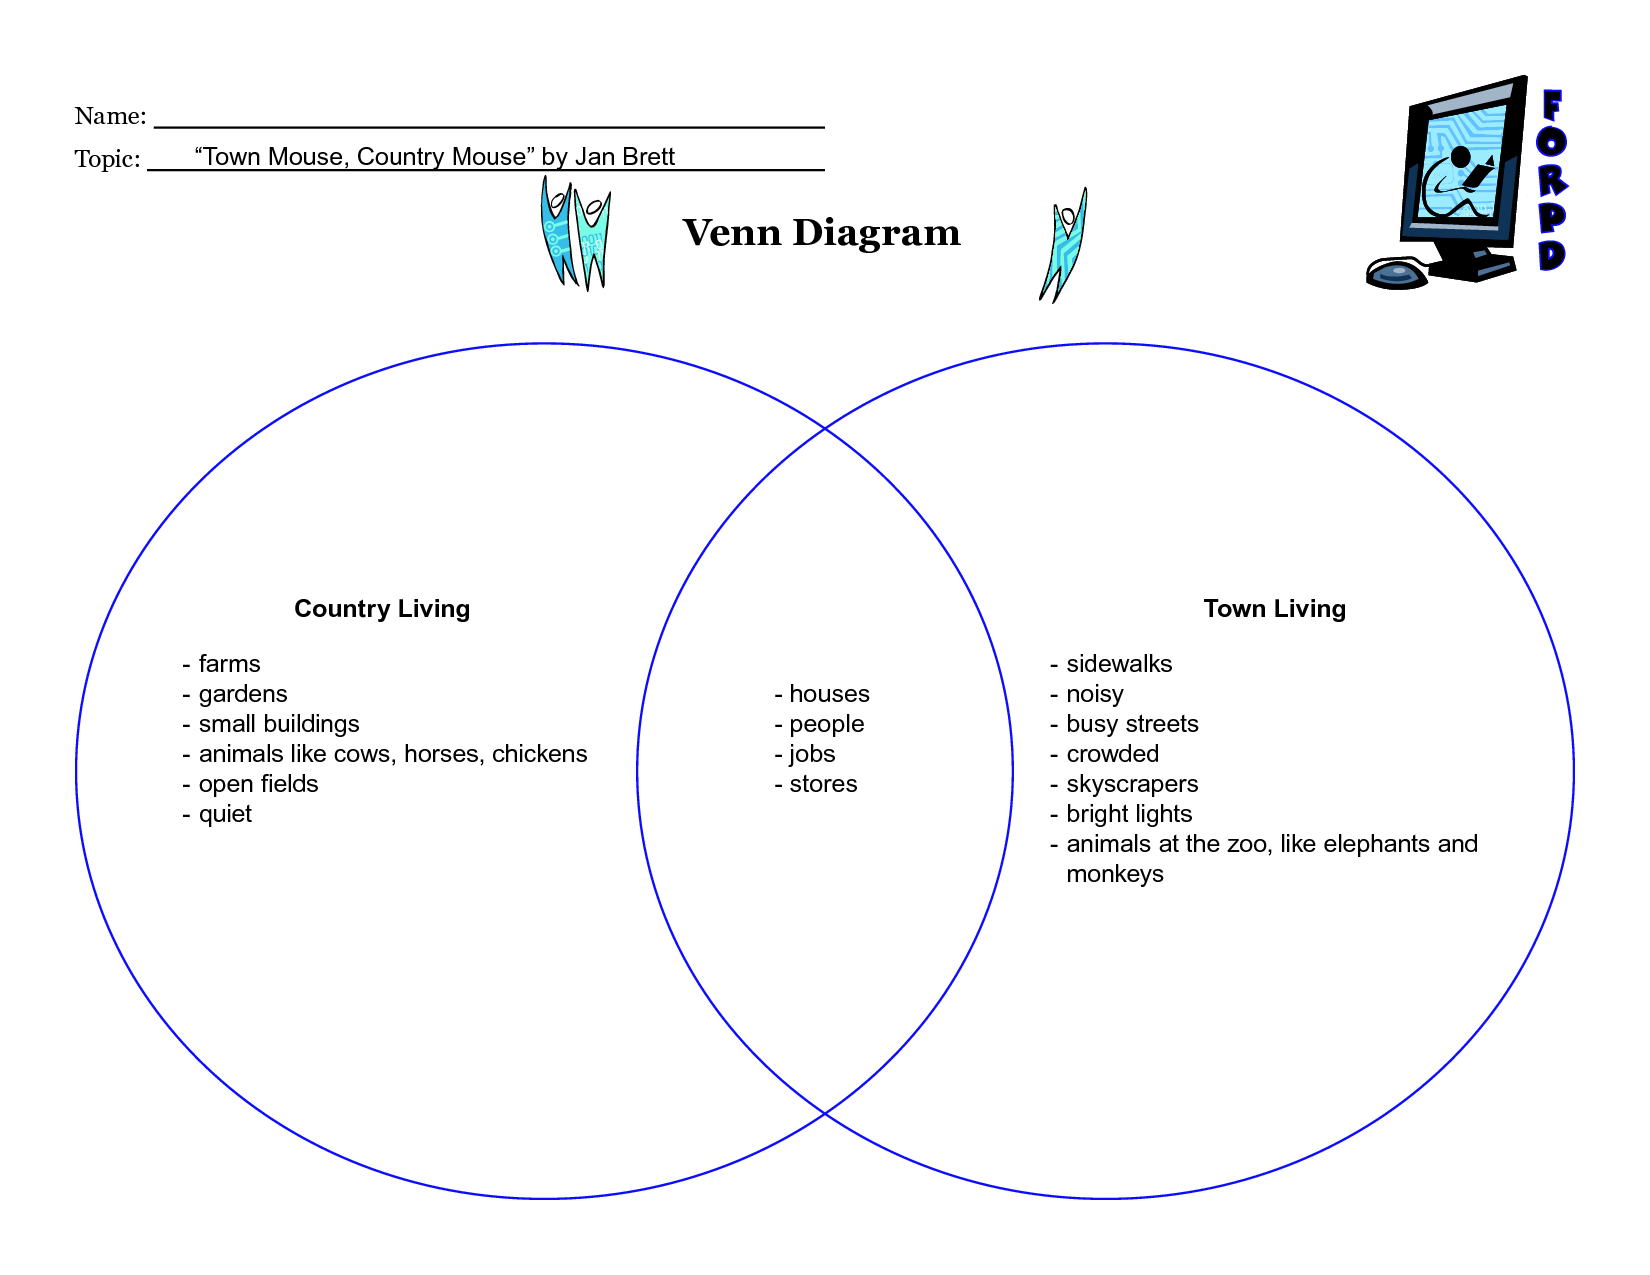 venn diagram worksheet country life city life topic town venn diagram worksheet country life city life topic town mouse country mouse by jan